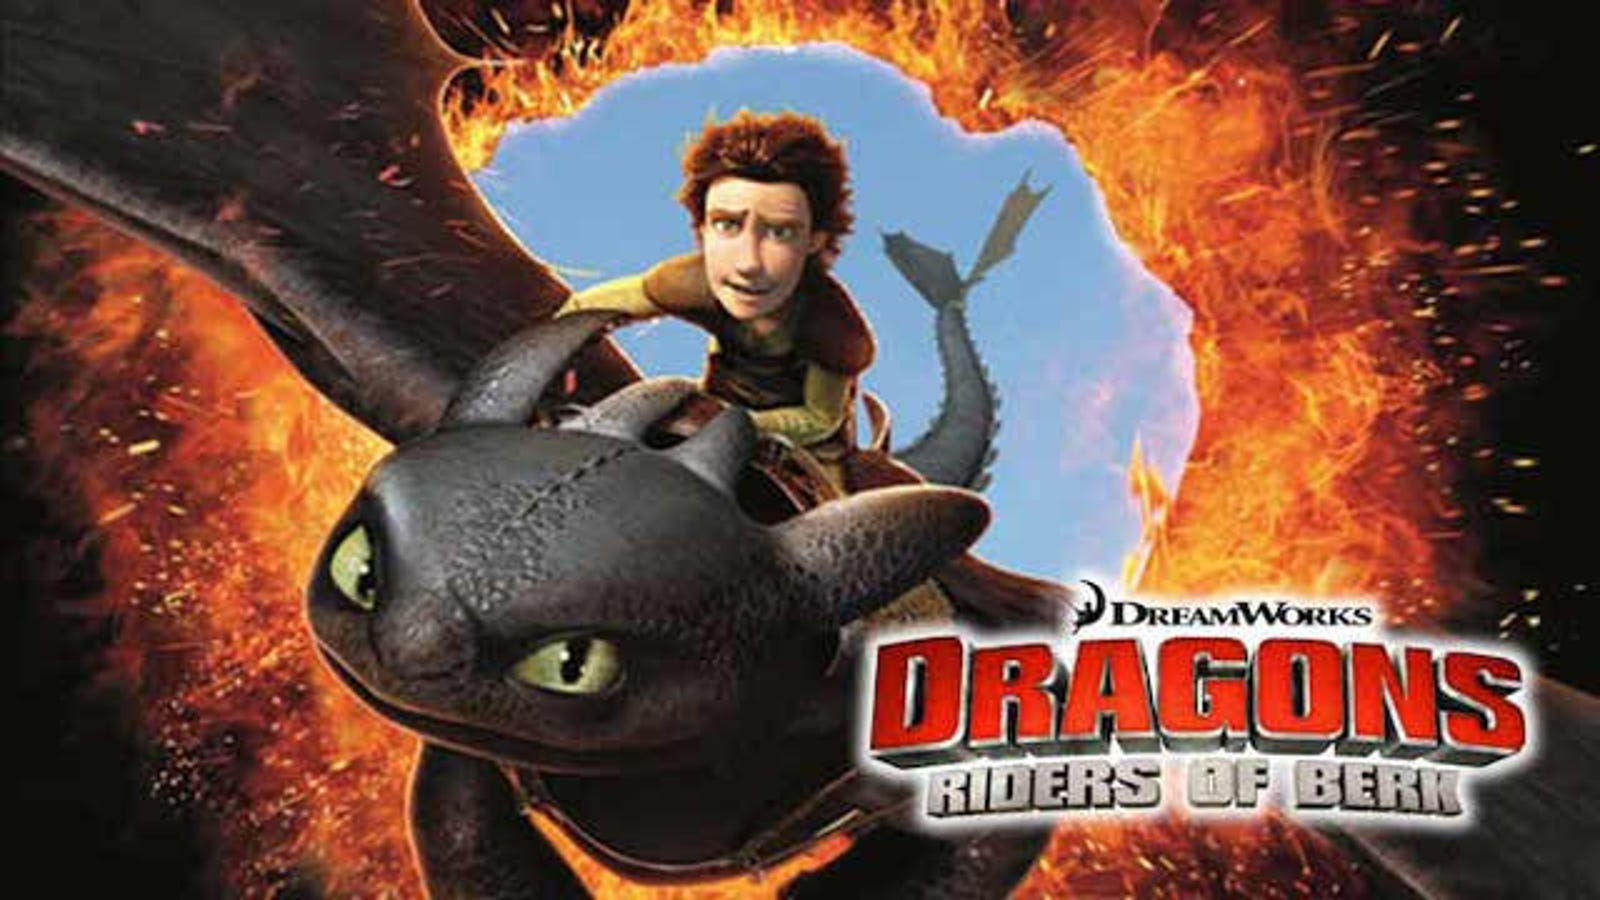 BECOME THE ULTIMATE - School of dragons